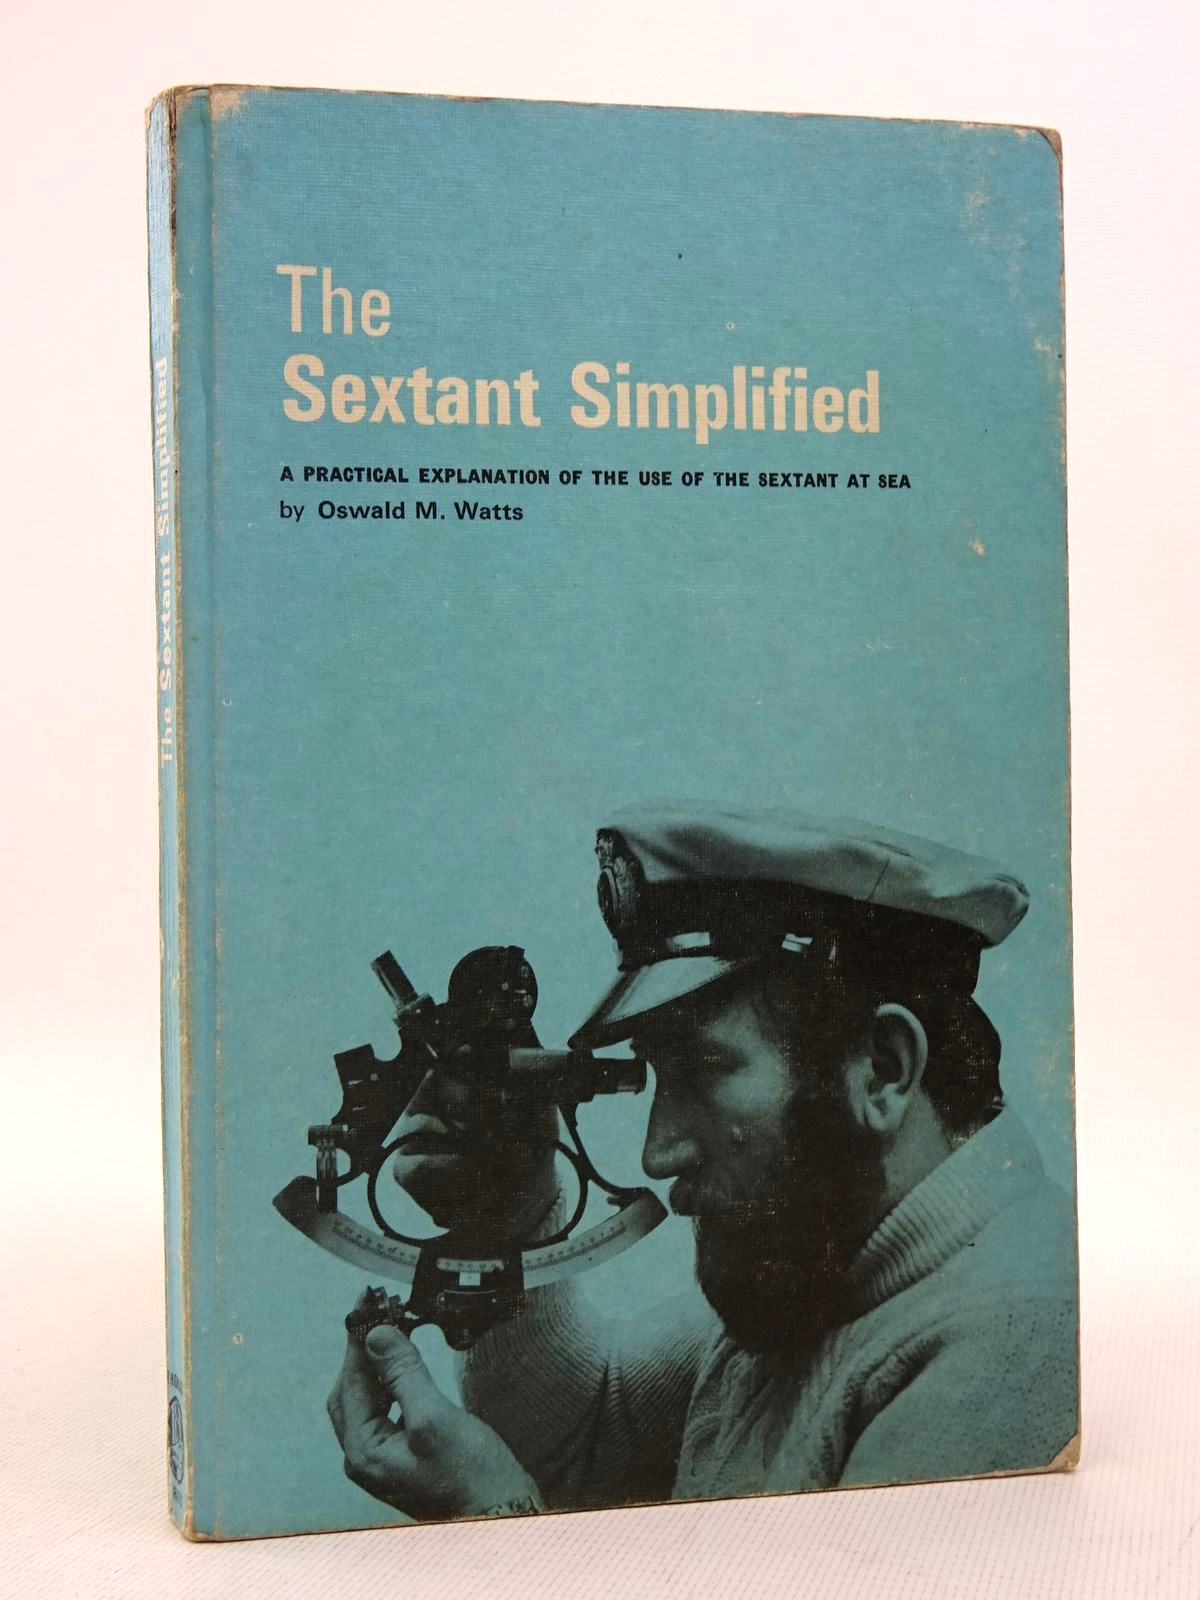 Photo of THE SEXTANT SIMPLIFIED A PRACTICAL EXPLANATION OF THE USE OF THE SEXTANT AT SEA written by Watts, Oswald M. published by Thomas Reed Publications Limited (STOCK CODE: 1817141)  for sale by Stella & Rose's Books